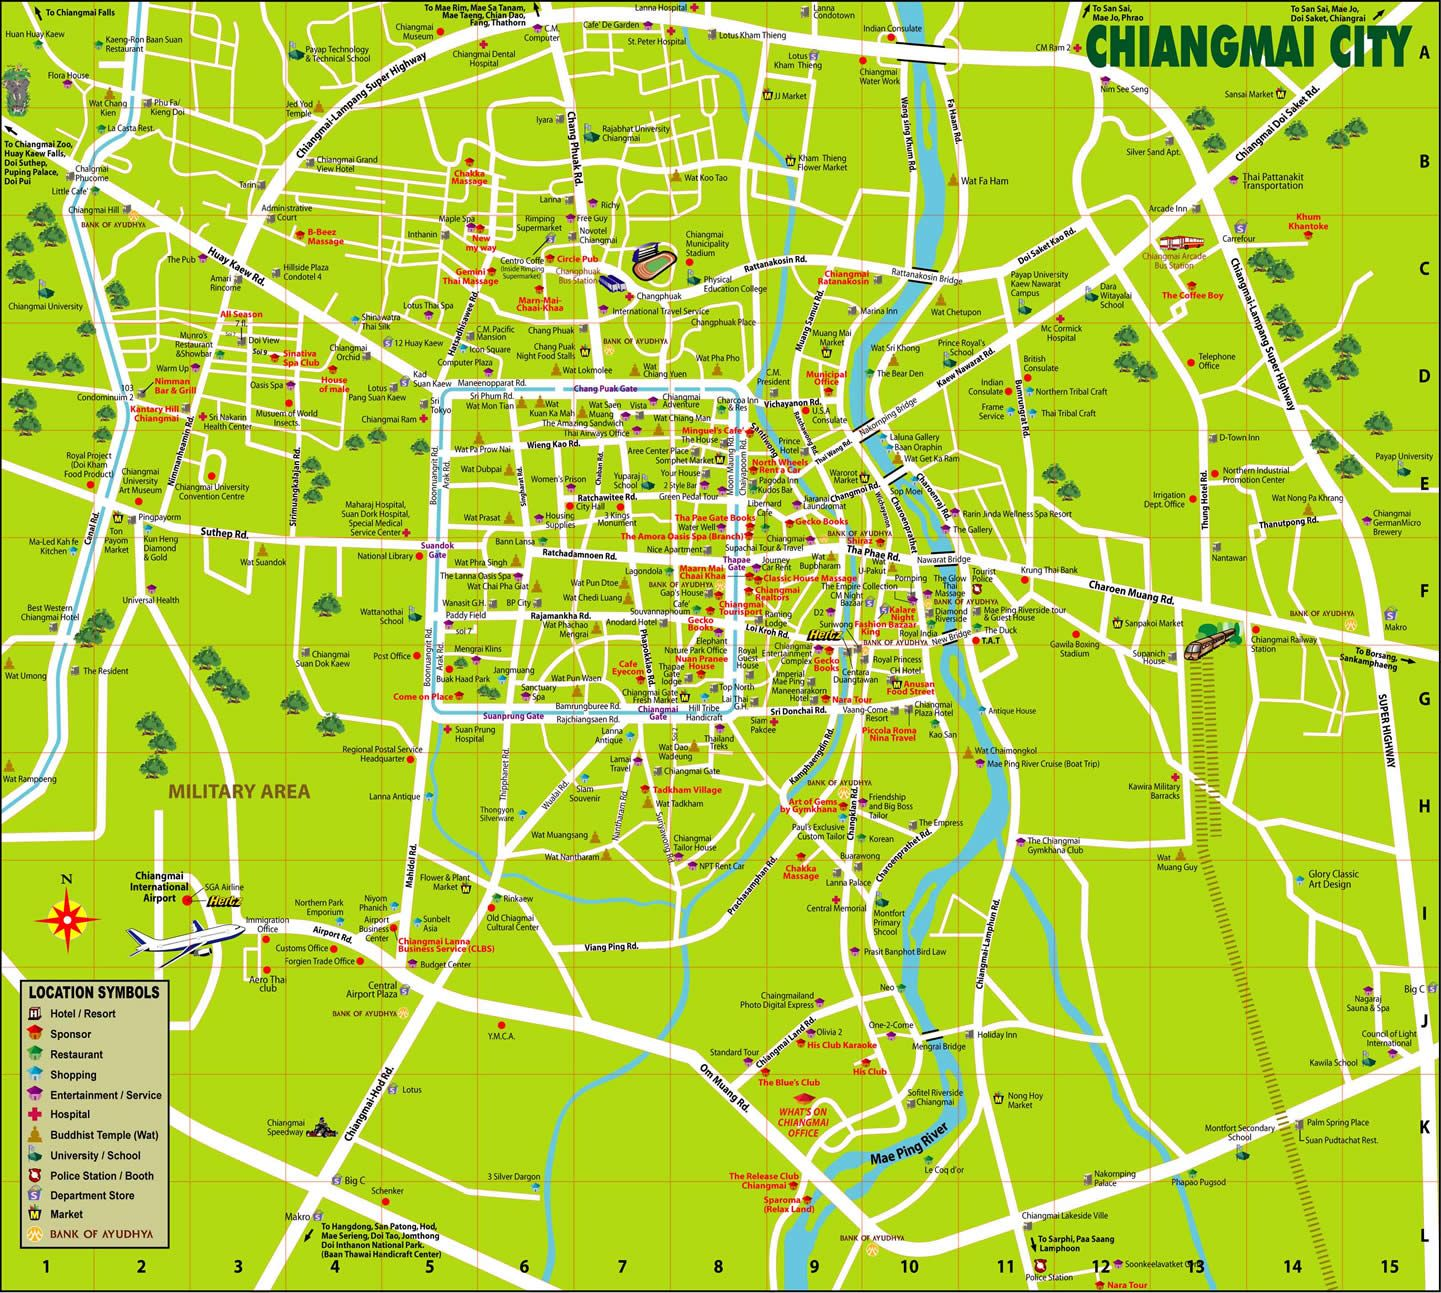 Pin by Wendy Kwok on Maps Pinterest Chiang mai City maps and